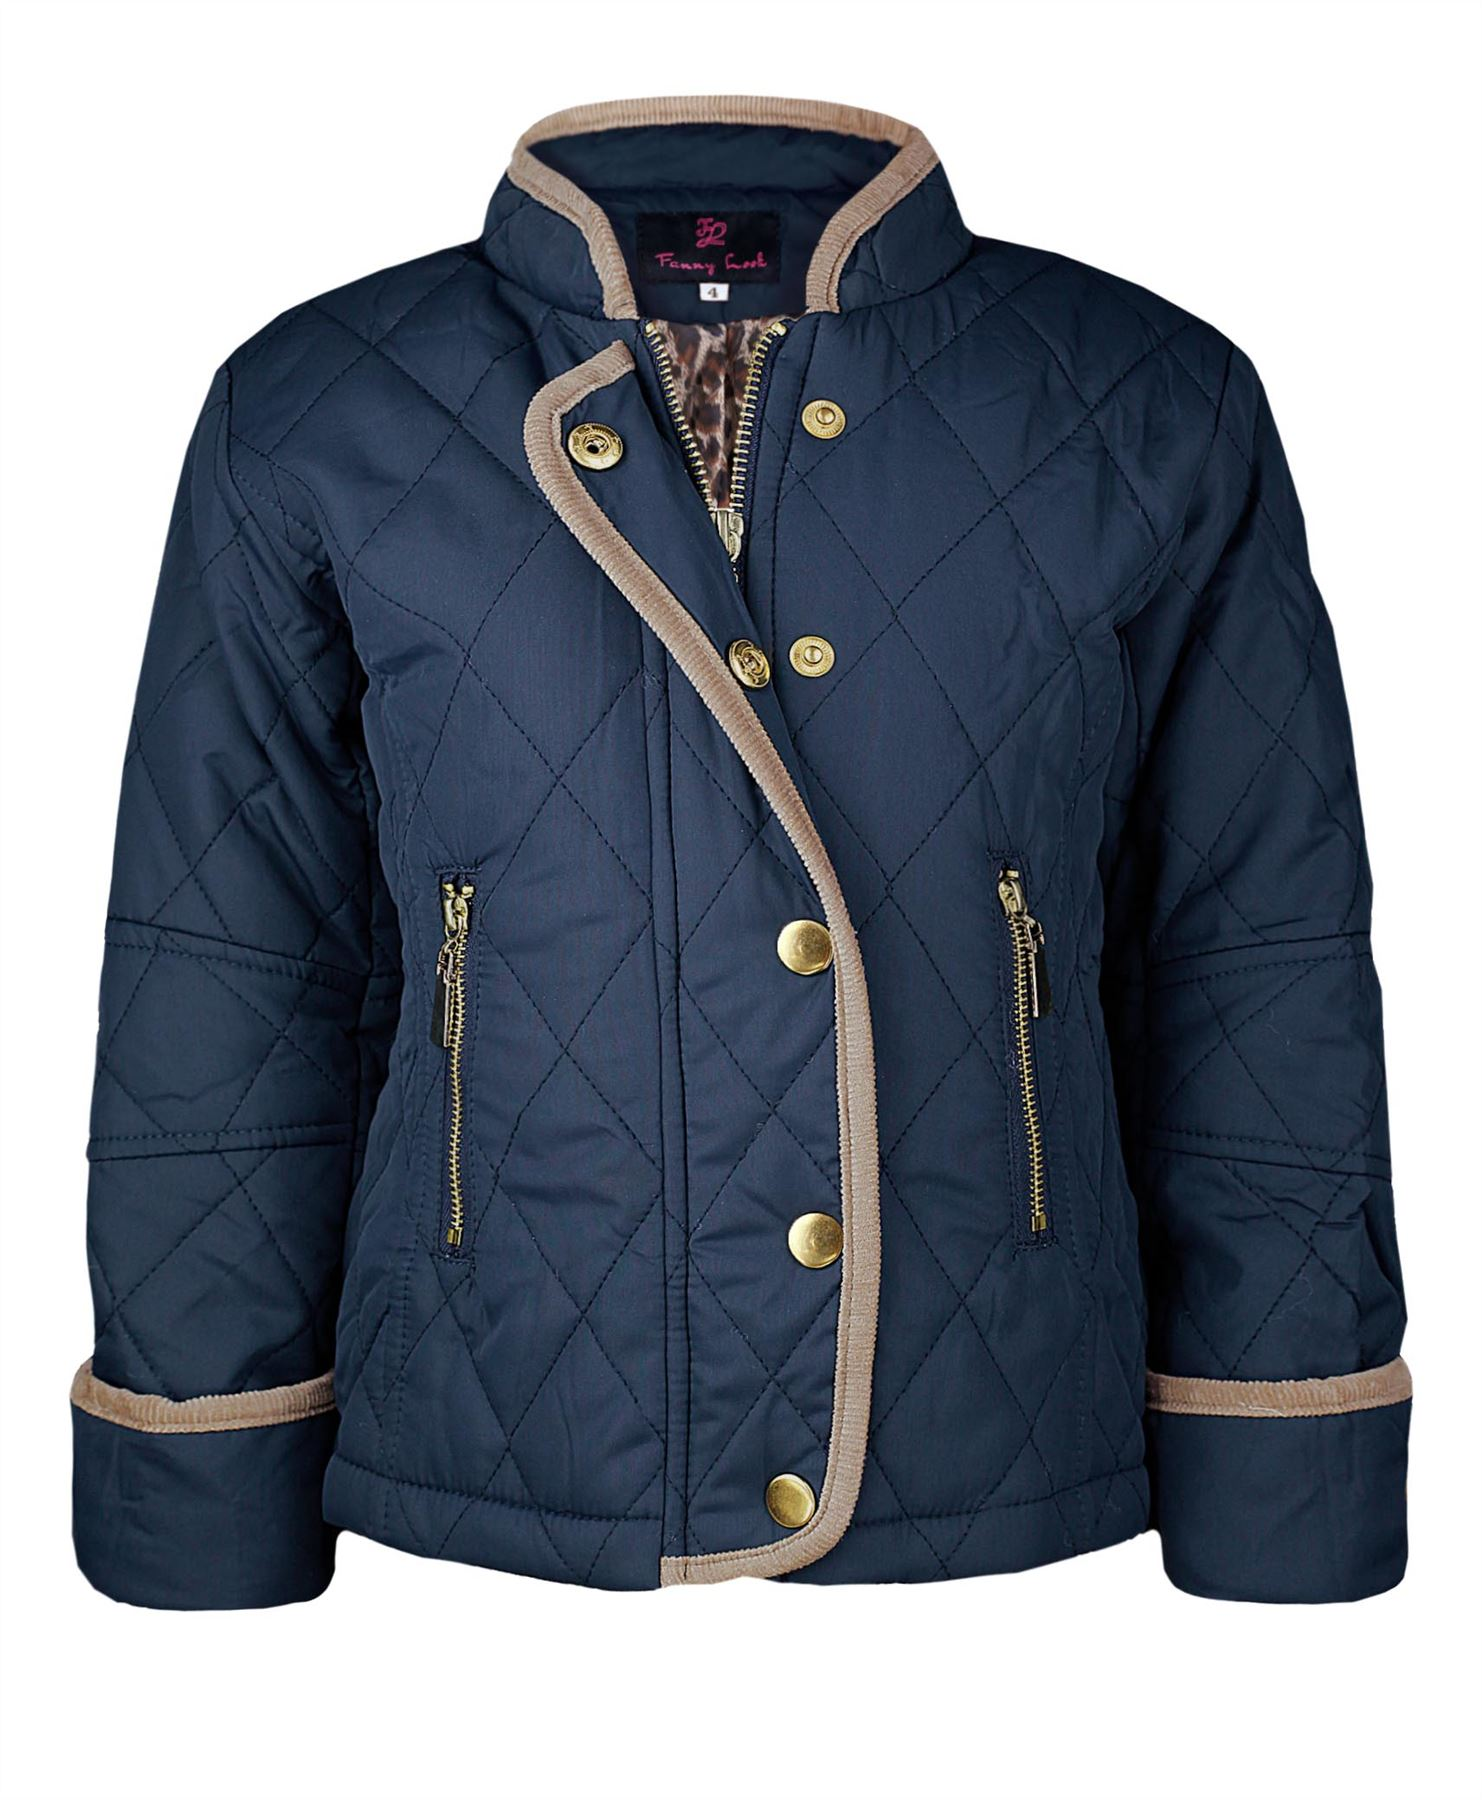 Stay warm and dry with this Military Style Insulated Diamond Quilted Flight Jacket. Modeled after the style of an airman's jacket, this coat will insulate heat through use of its warm lining. Both the insulation and the outer shell are made of % Polyester, making this item versatile and durable/5().